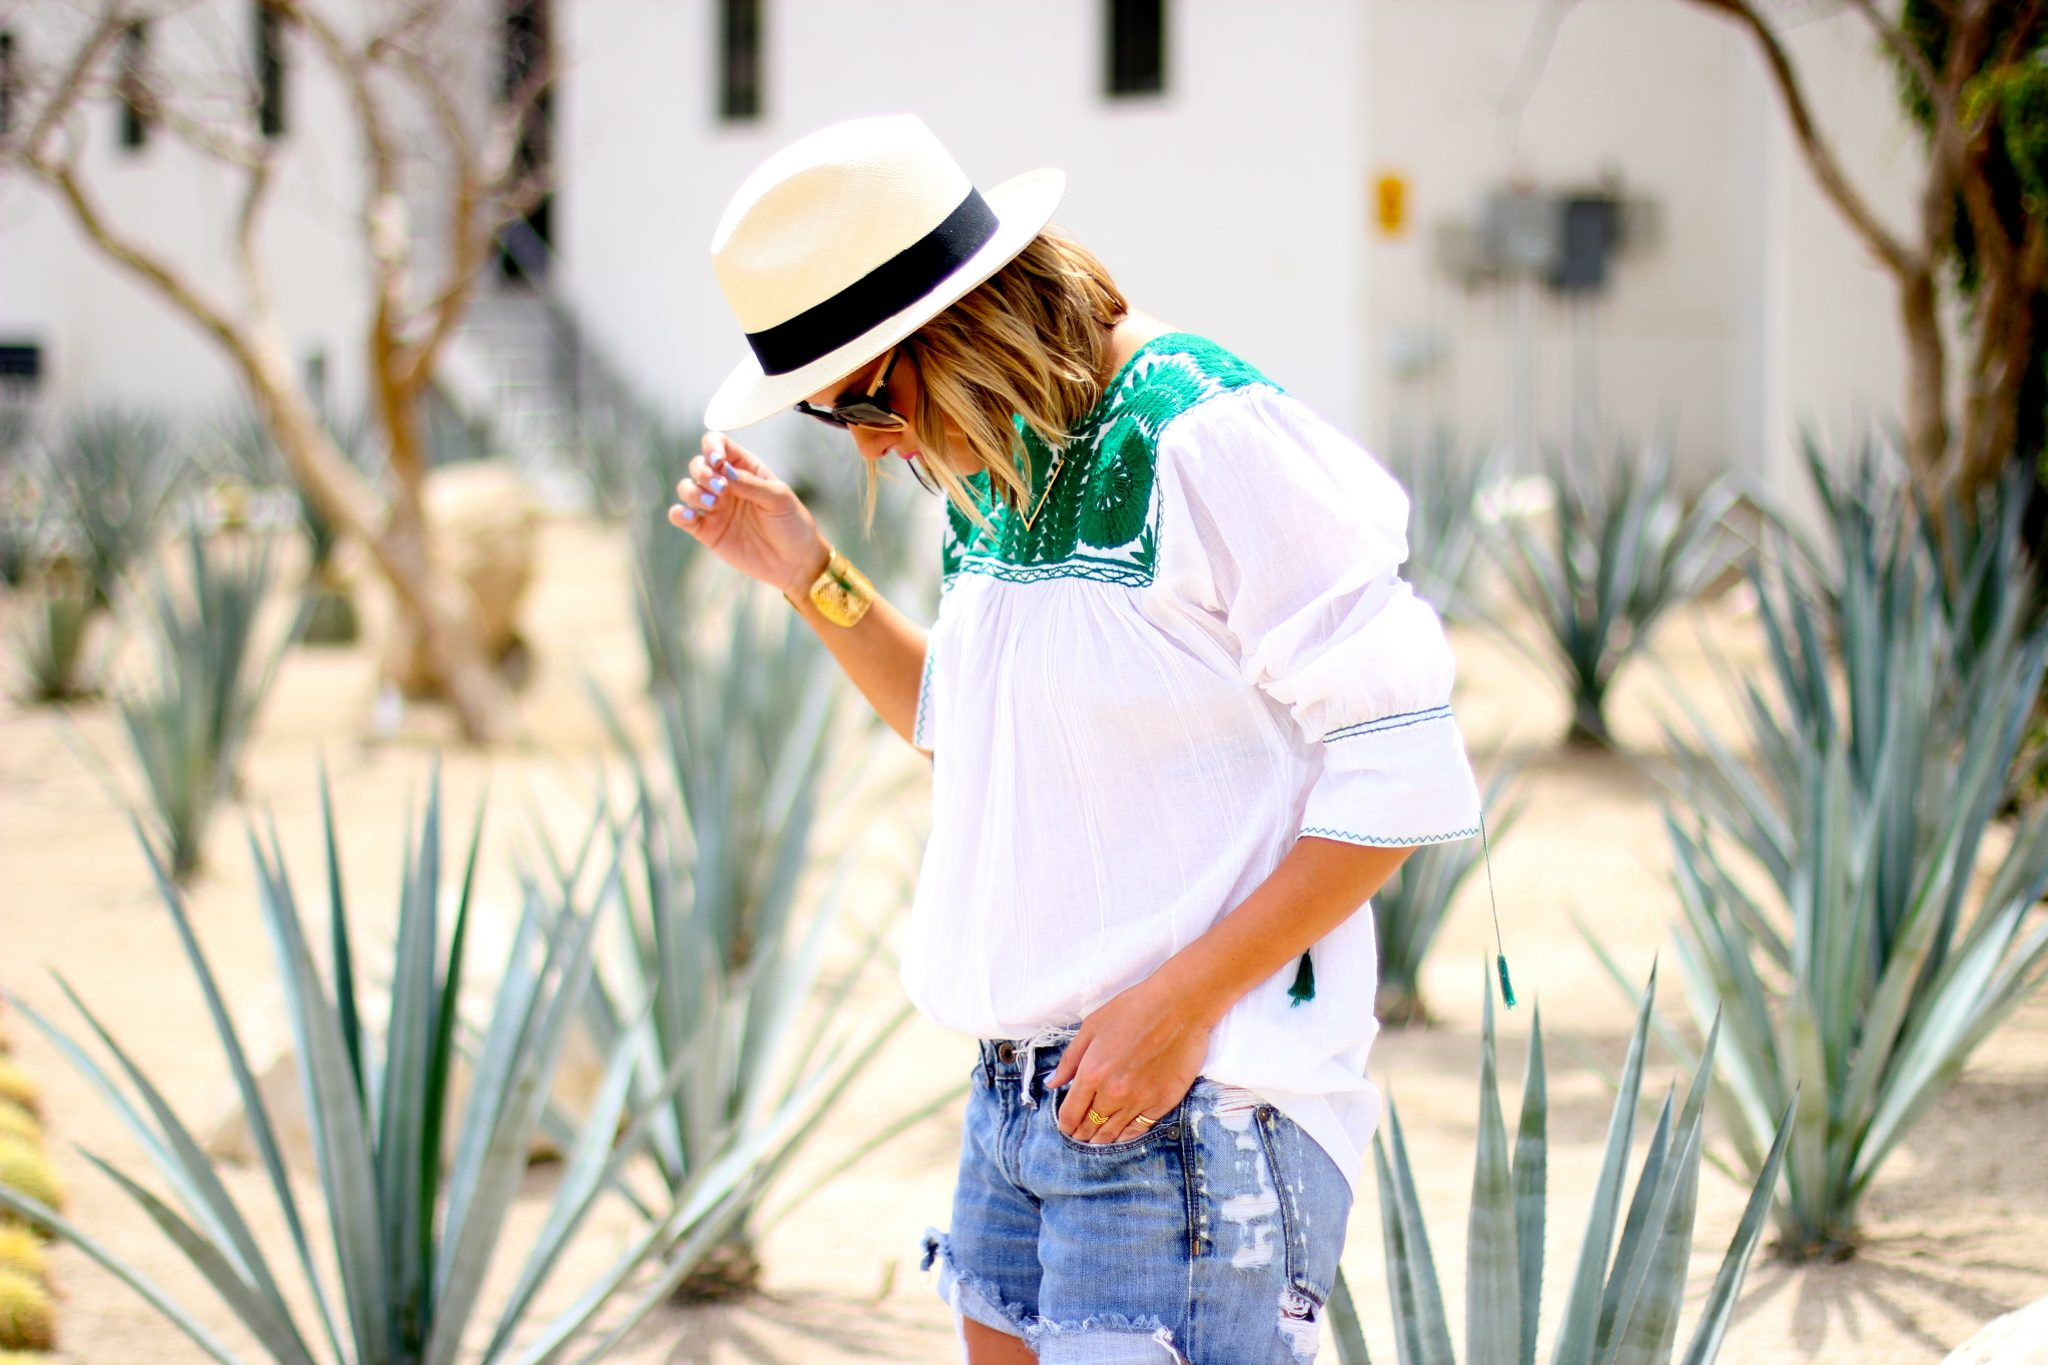 64aa7d9a74c3 Top  Found in Cabo at a village marketplace  Shorts  Madewell